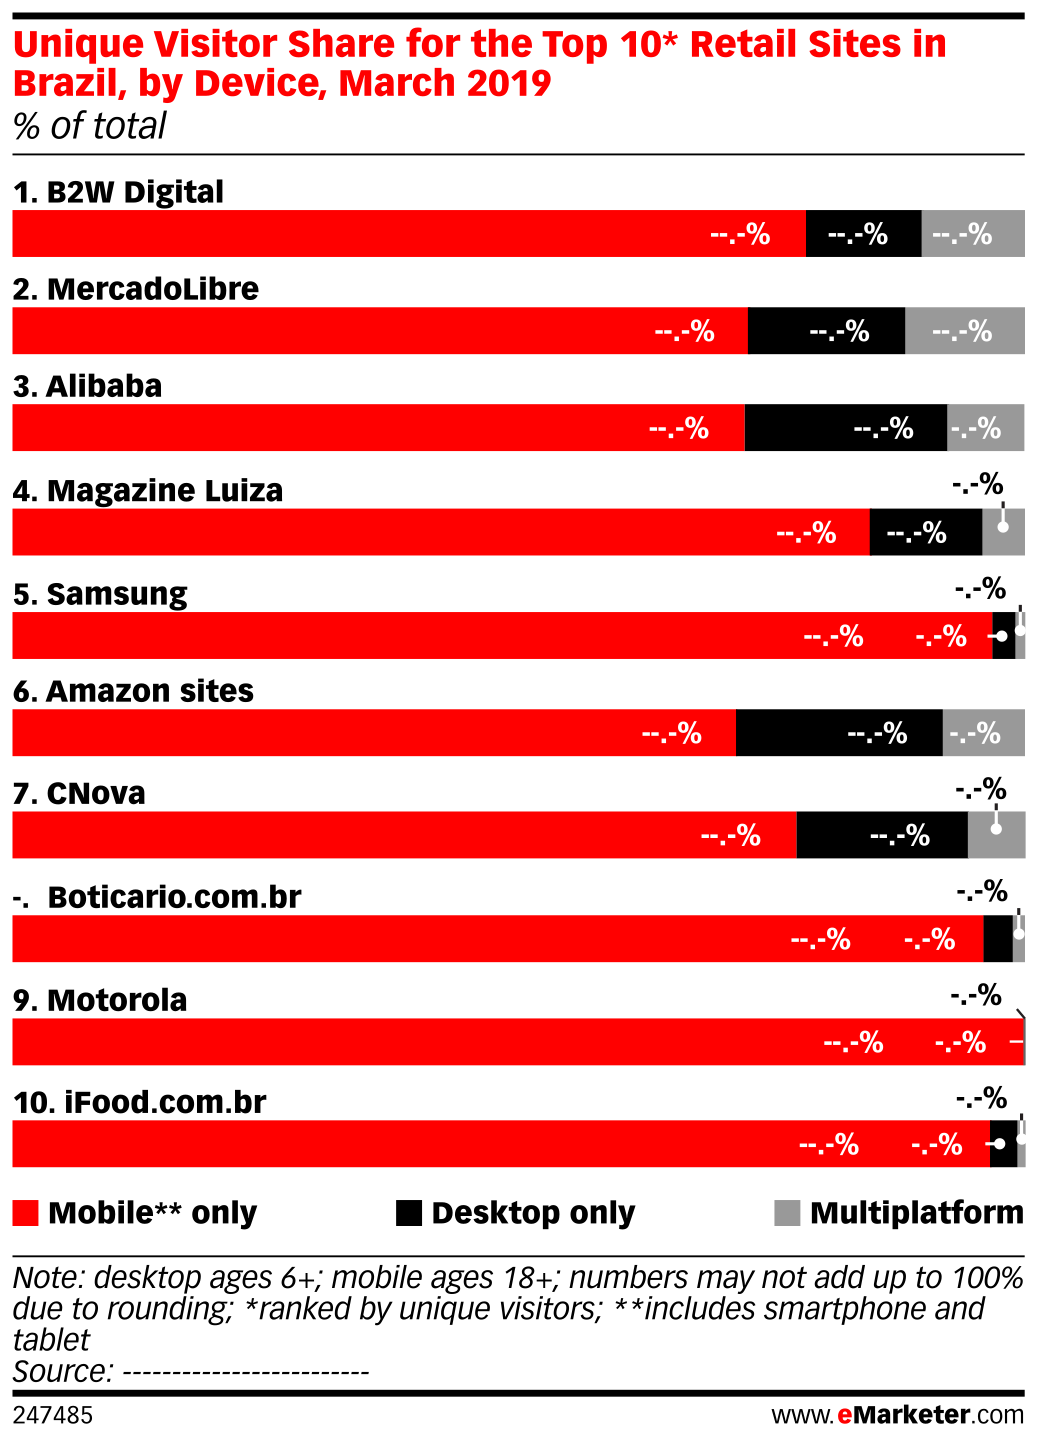 Unique Visitor Share for the Top 10* Retail Sites in Brazil, by Device, March 2019 (% of total)